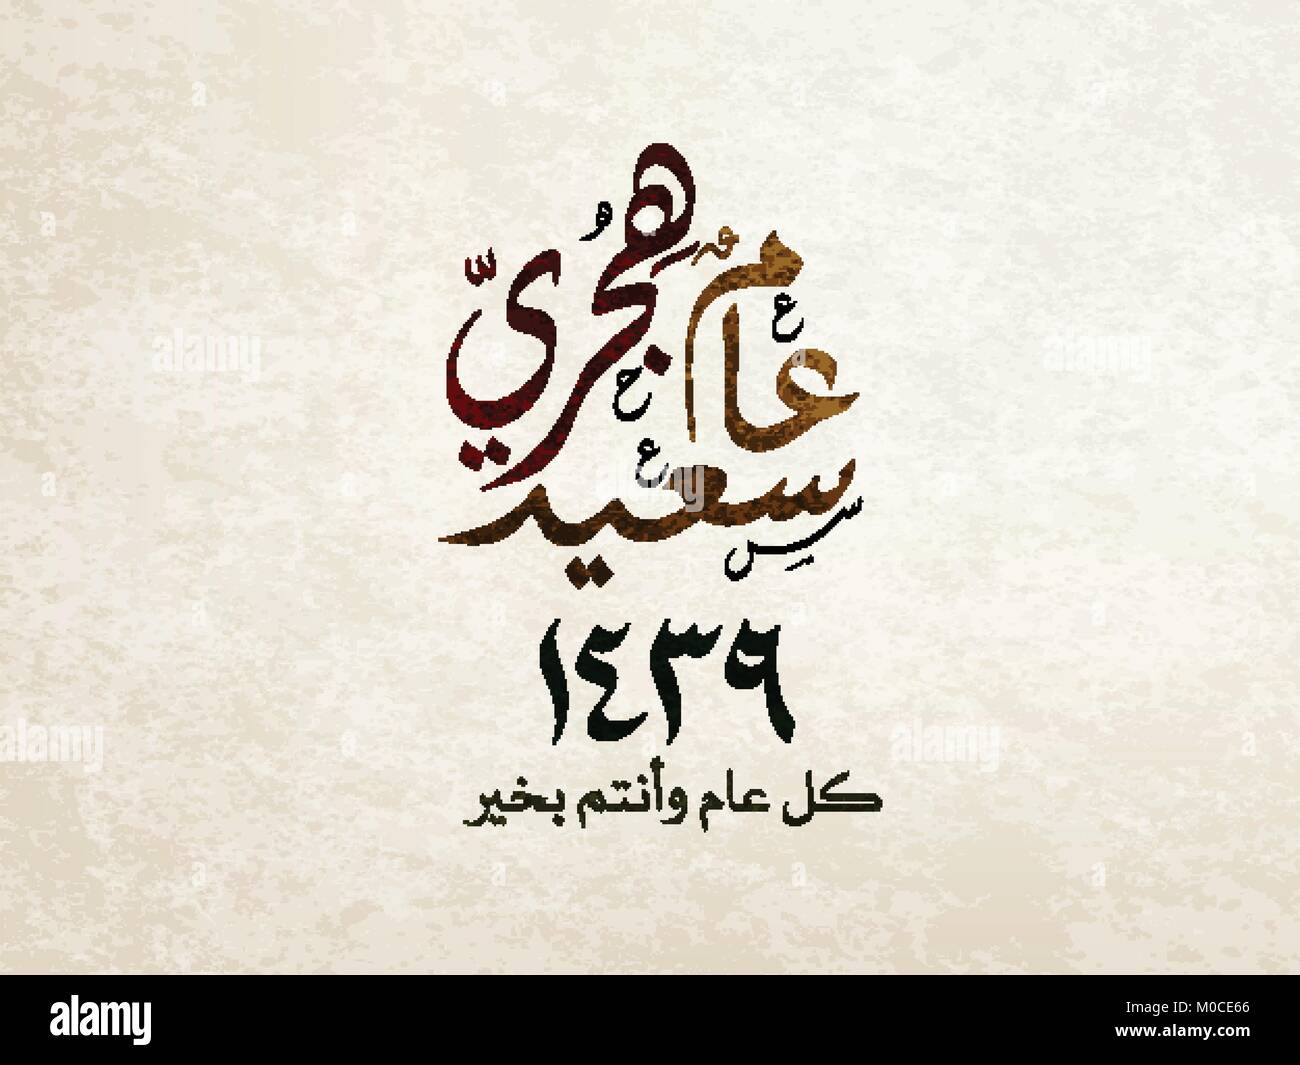 Happy New Islamic Year  Blessed Hijri New year in Arabic Calligraphy     Happy New Islamic Year  Blessed Hijri New year in Arabic Calligraphy type   Vintage Background and Creative Type calligraphy greeting